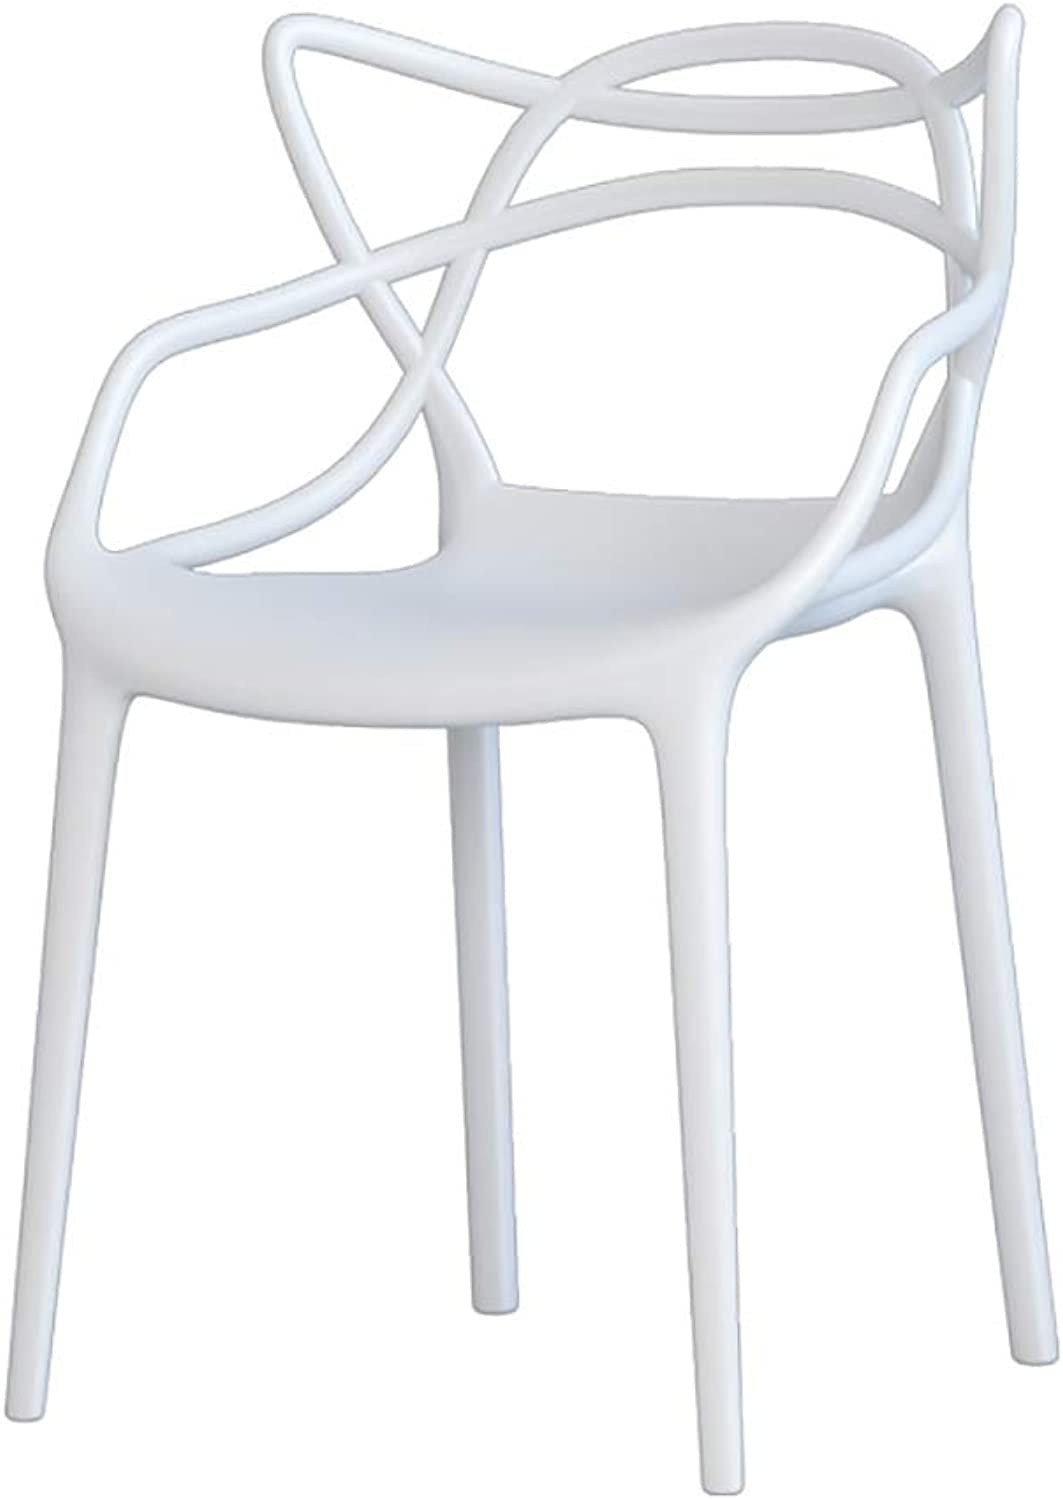 Home Modern Simple Dining Chair Backrest Desk Chair Plastic Casual Cafe Personality Stool (color   B)